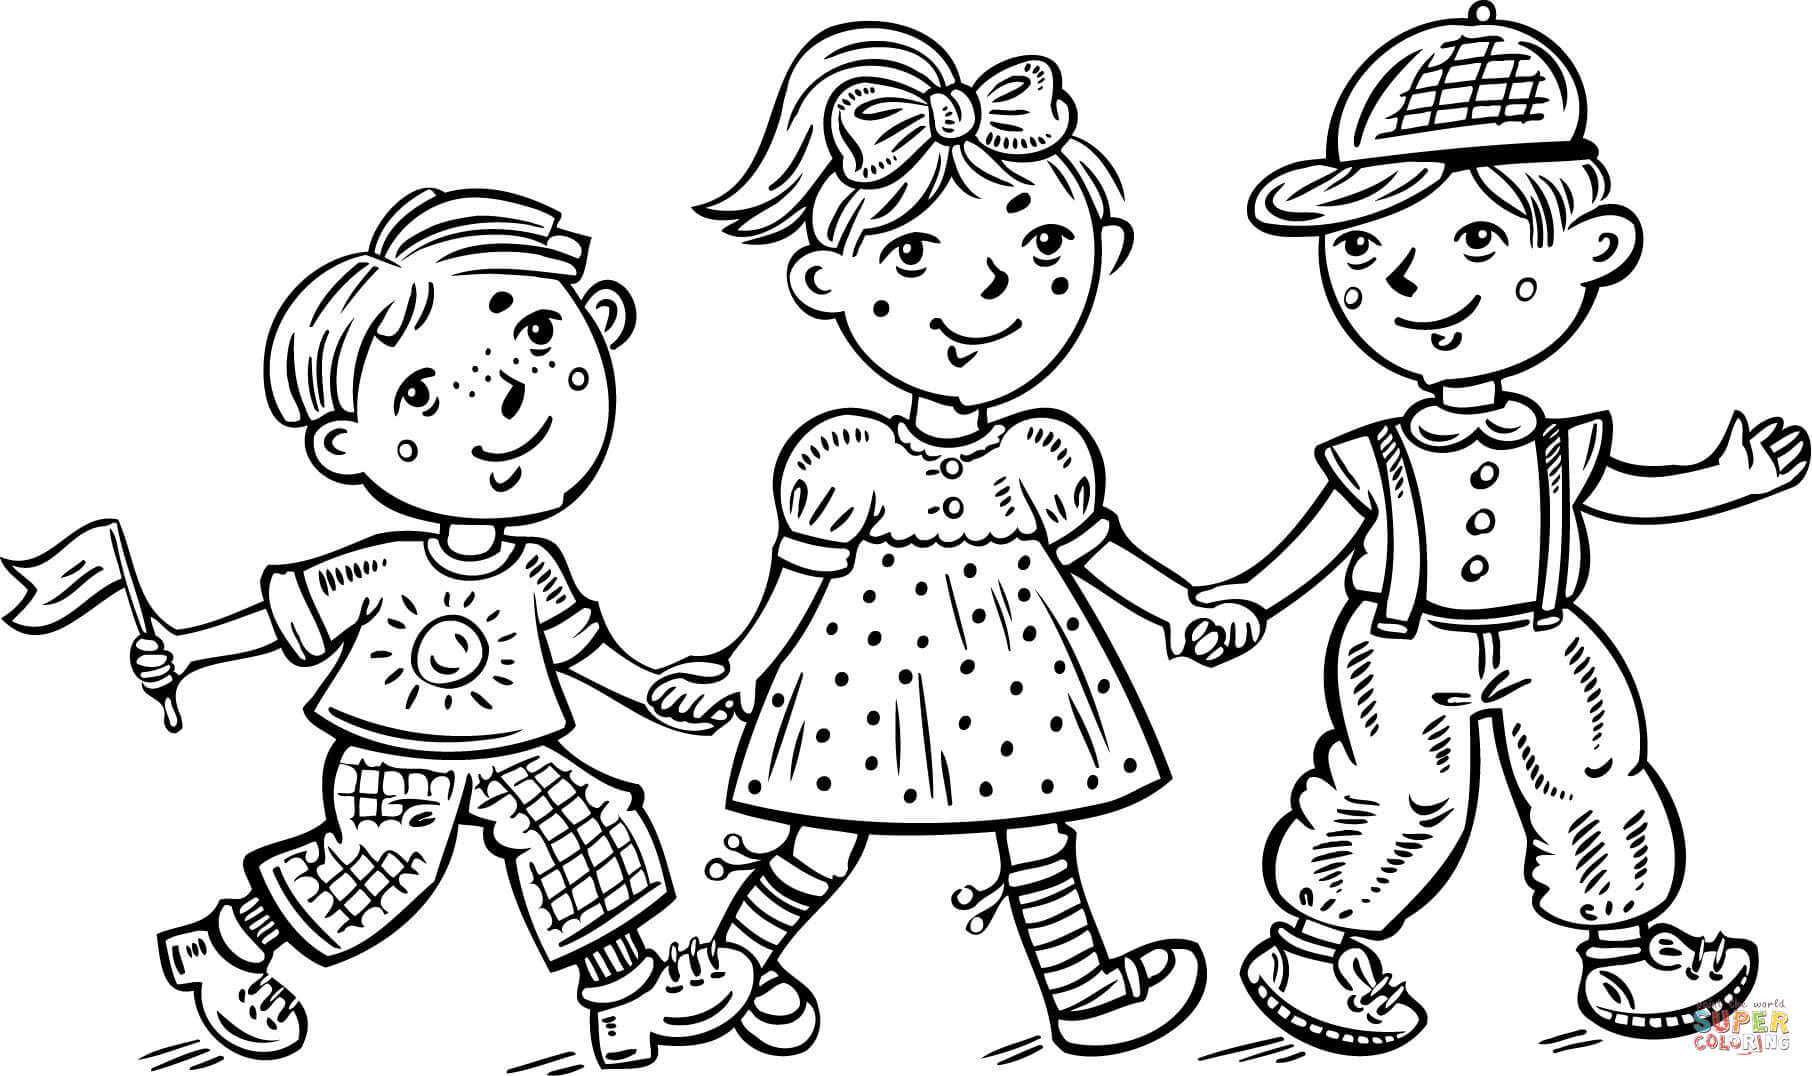 coloring boy girl boy outline drawing at getdrawings free download girl boy coloring